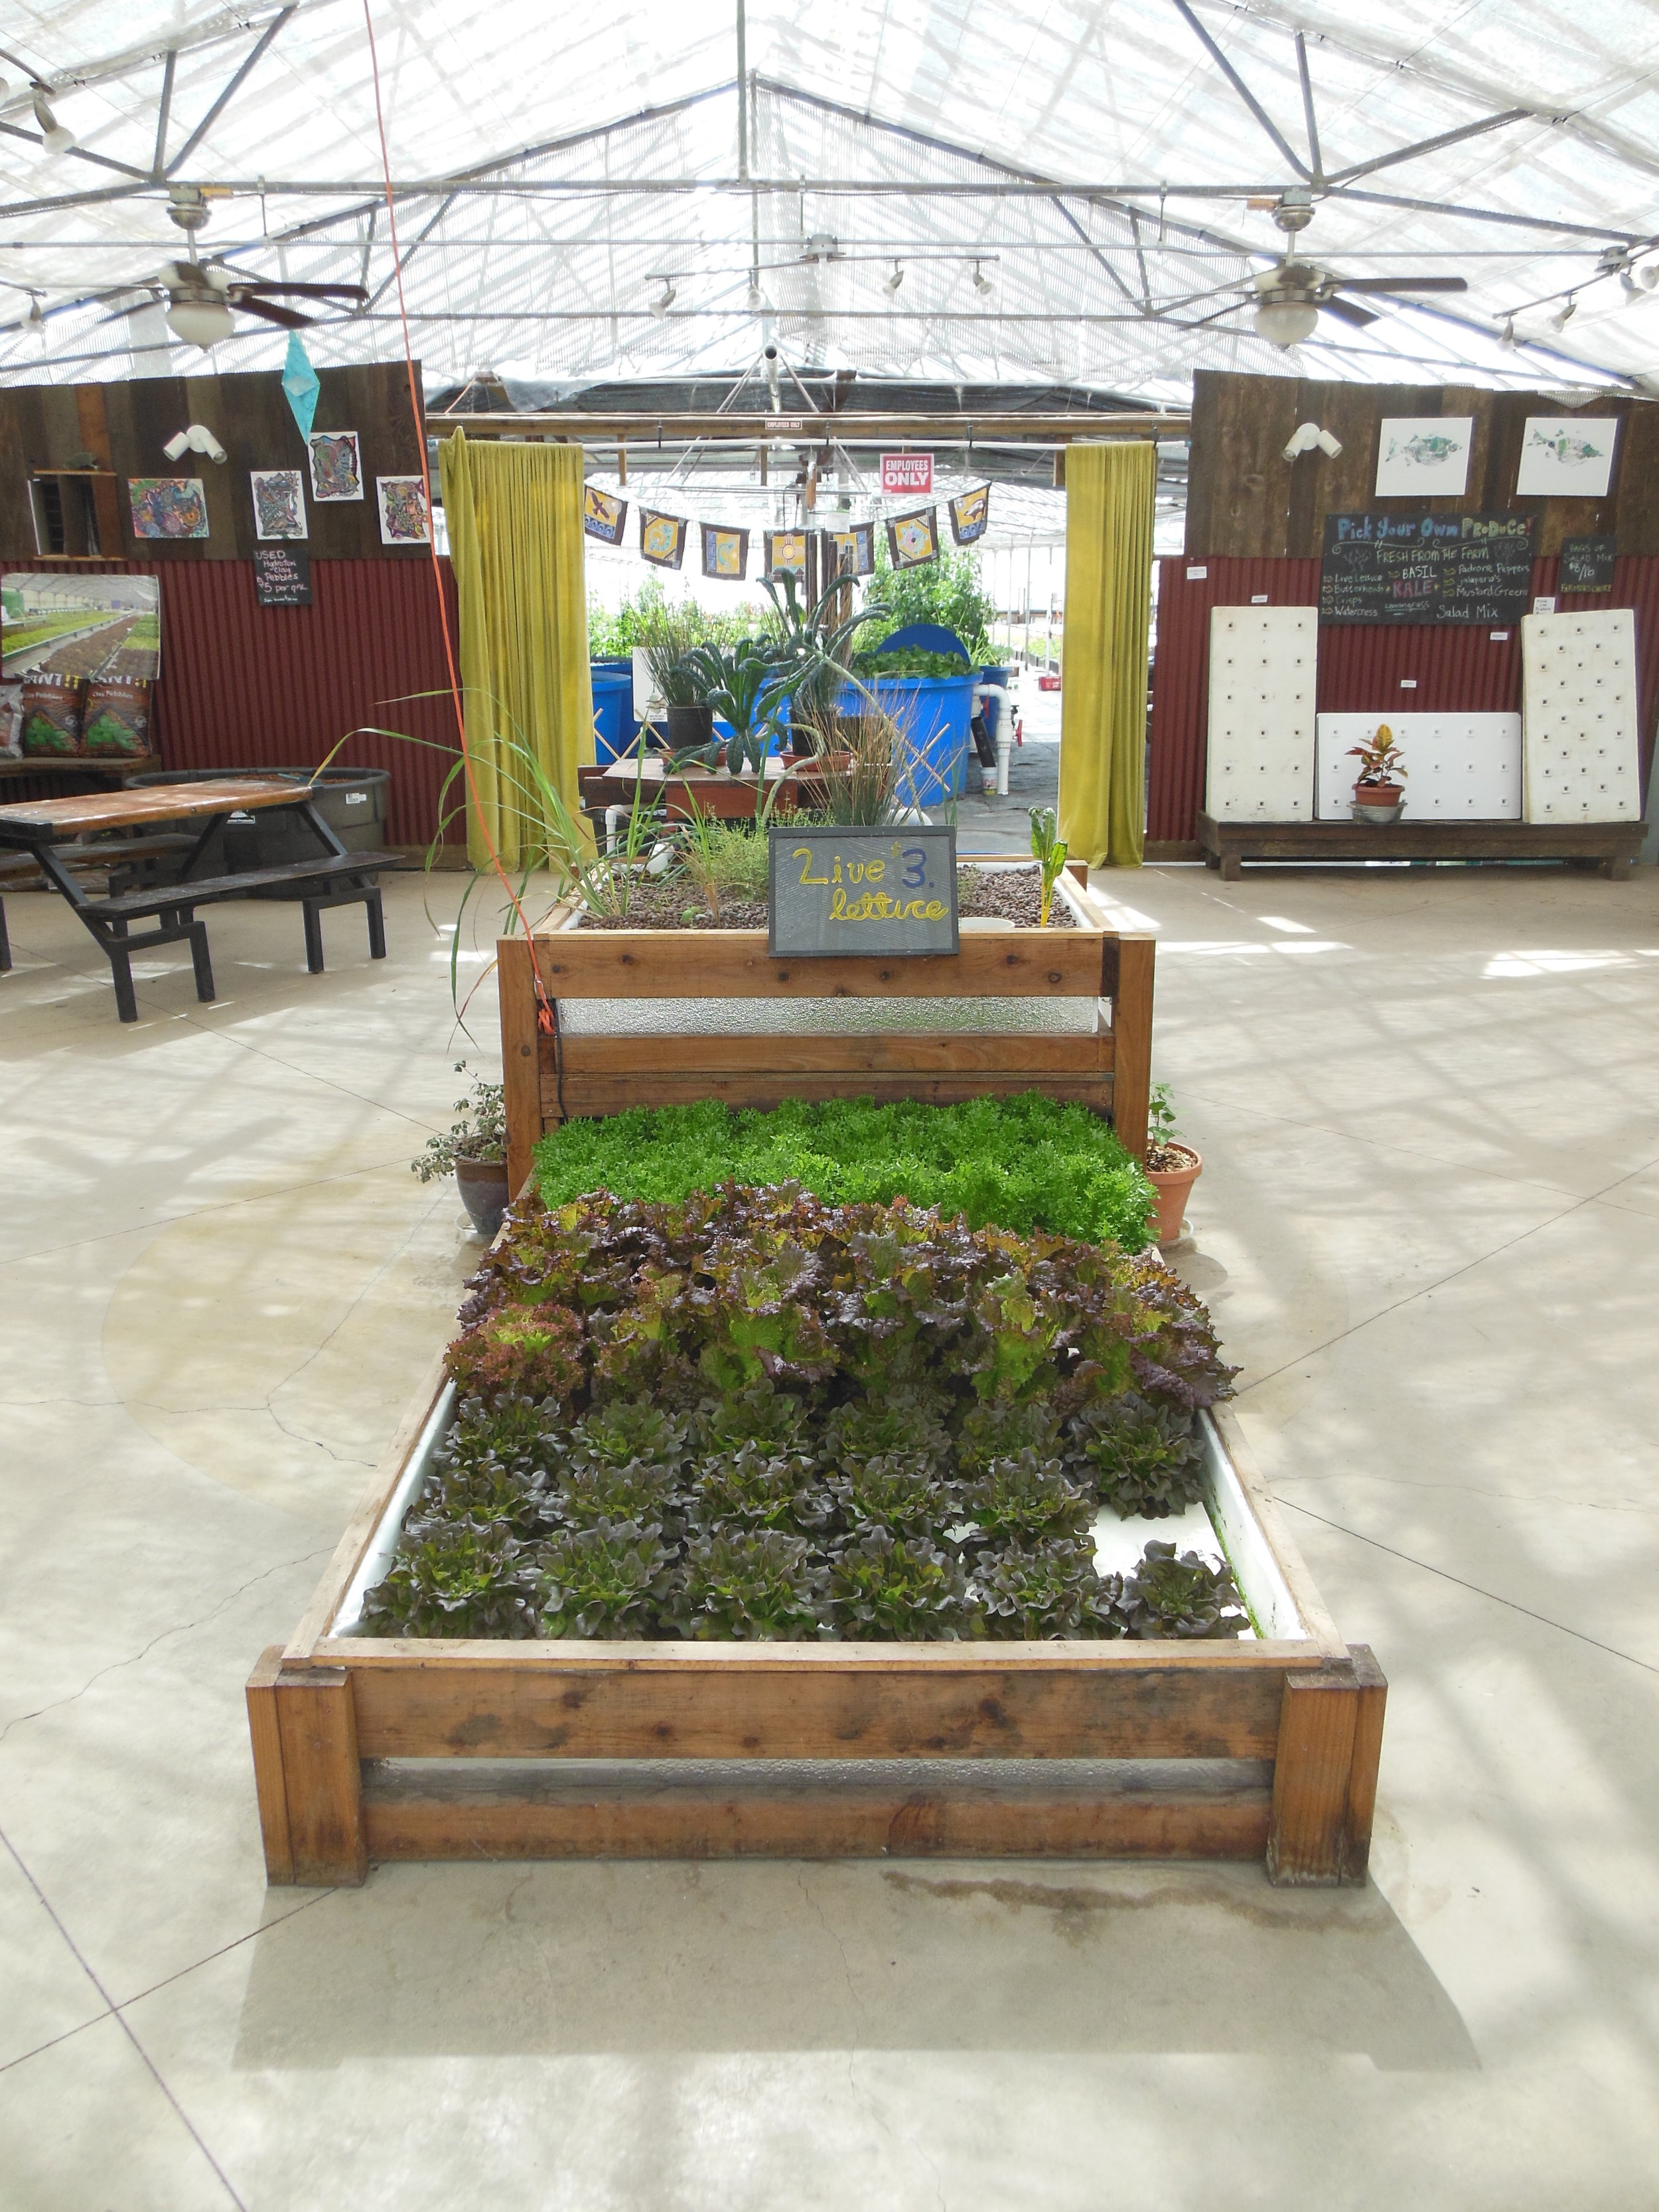 U-Pick Lettuce the Aquaponic way - directly from our home aquaponic system. Can't get any fresher than that!